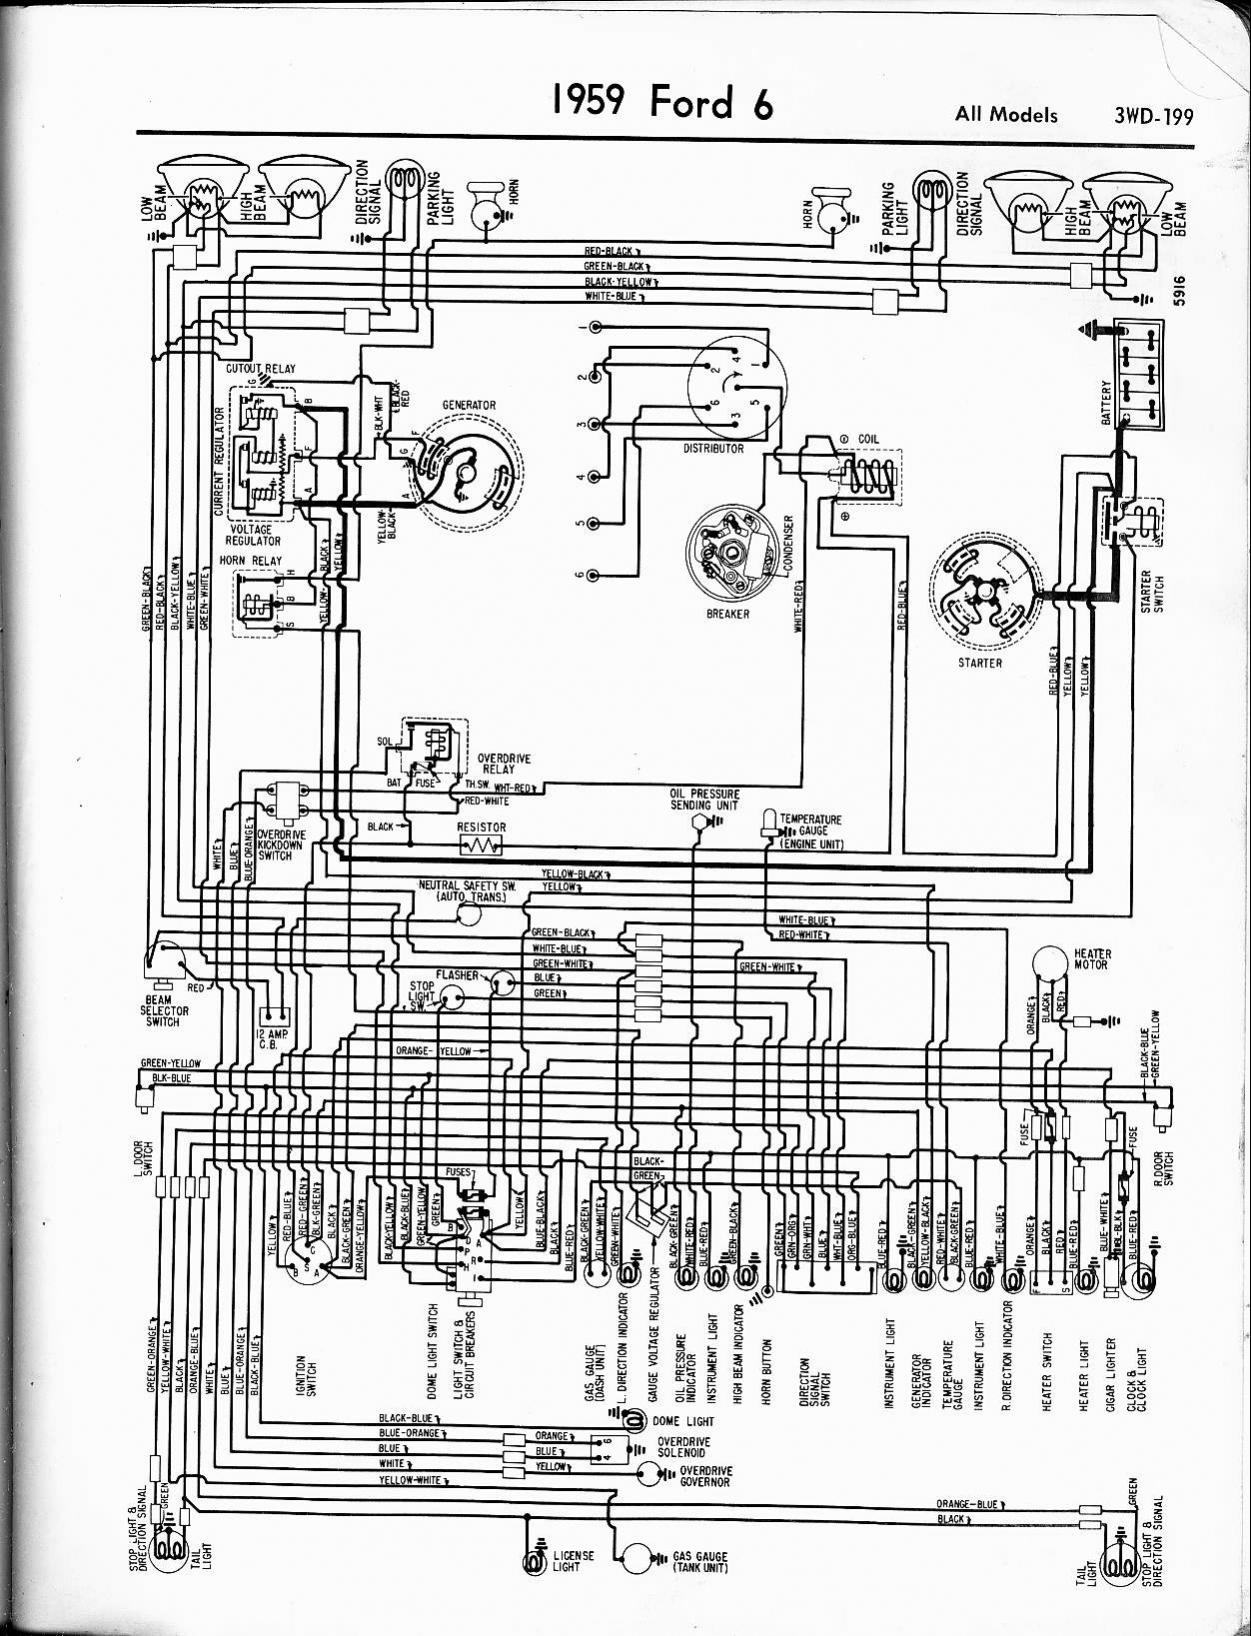 Ford Galaxy Wiring Diagram 1959 Get Free Image About